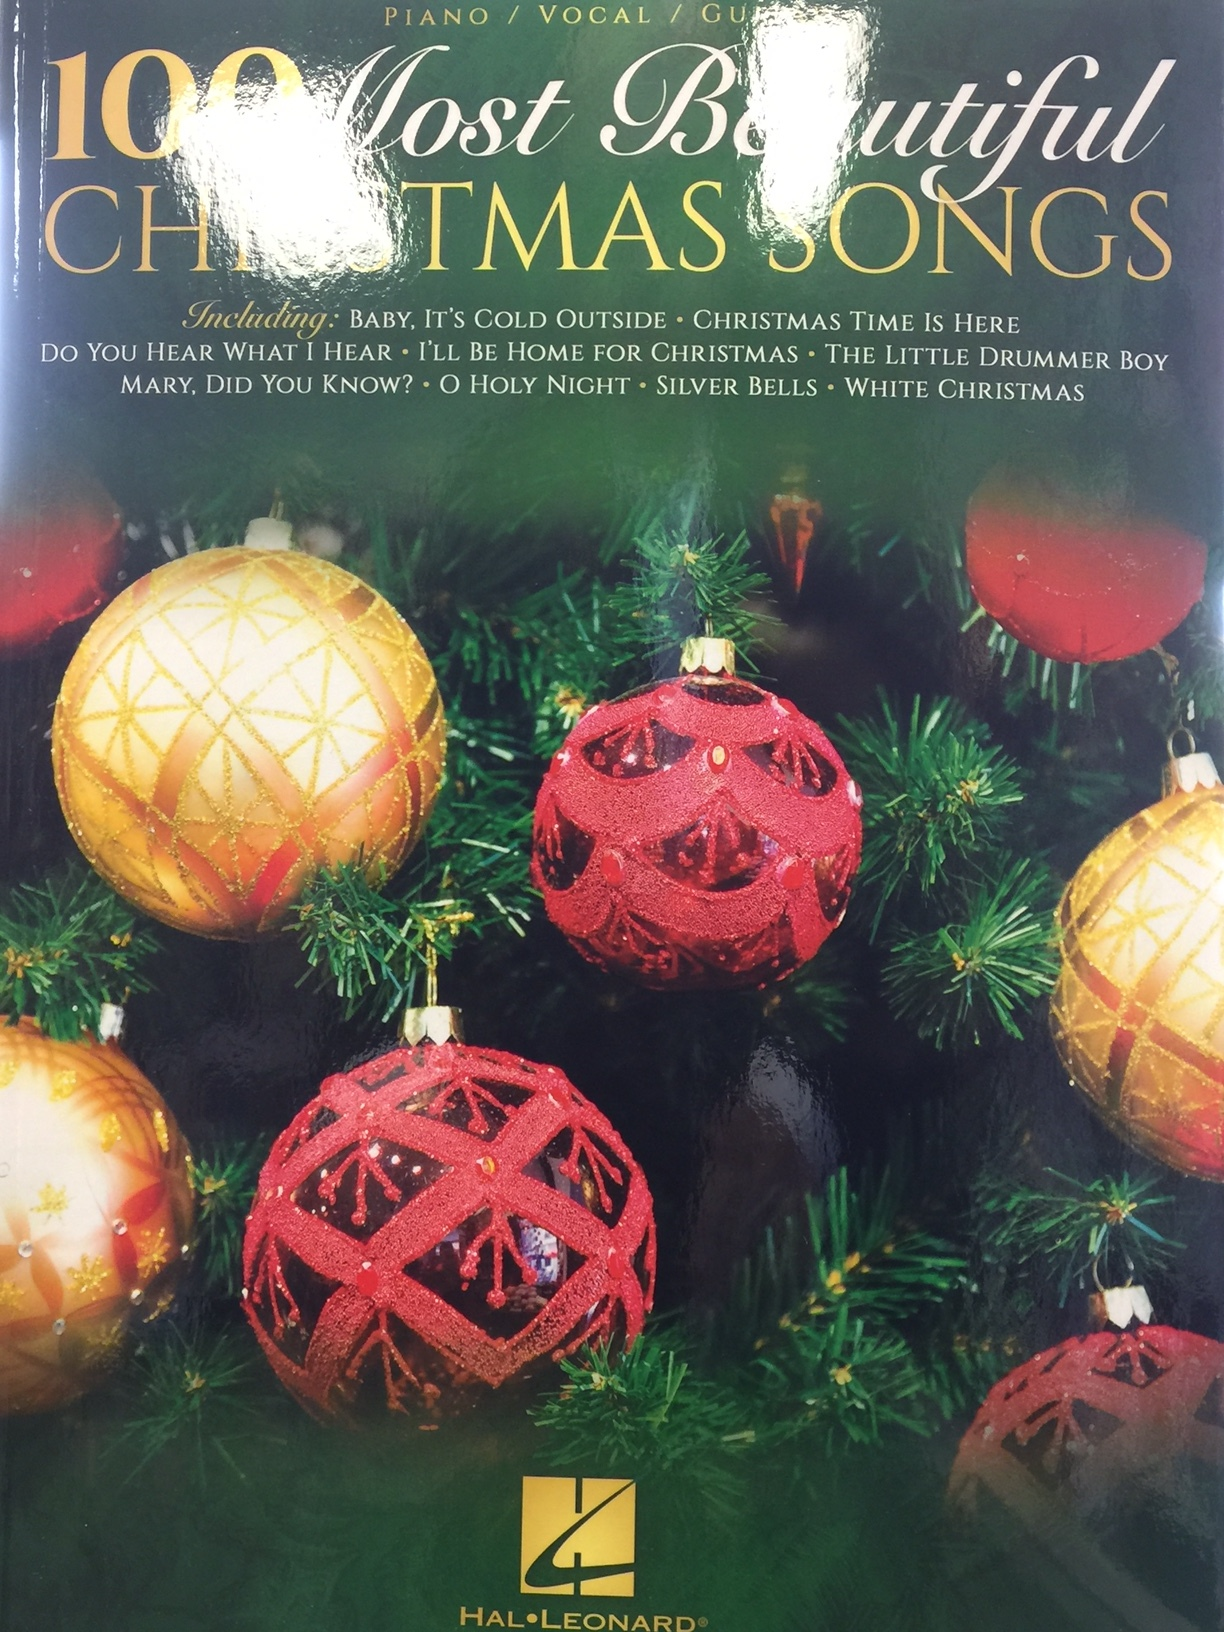 100 most beautiful christmas songs - When Did White Christmas Come Out